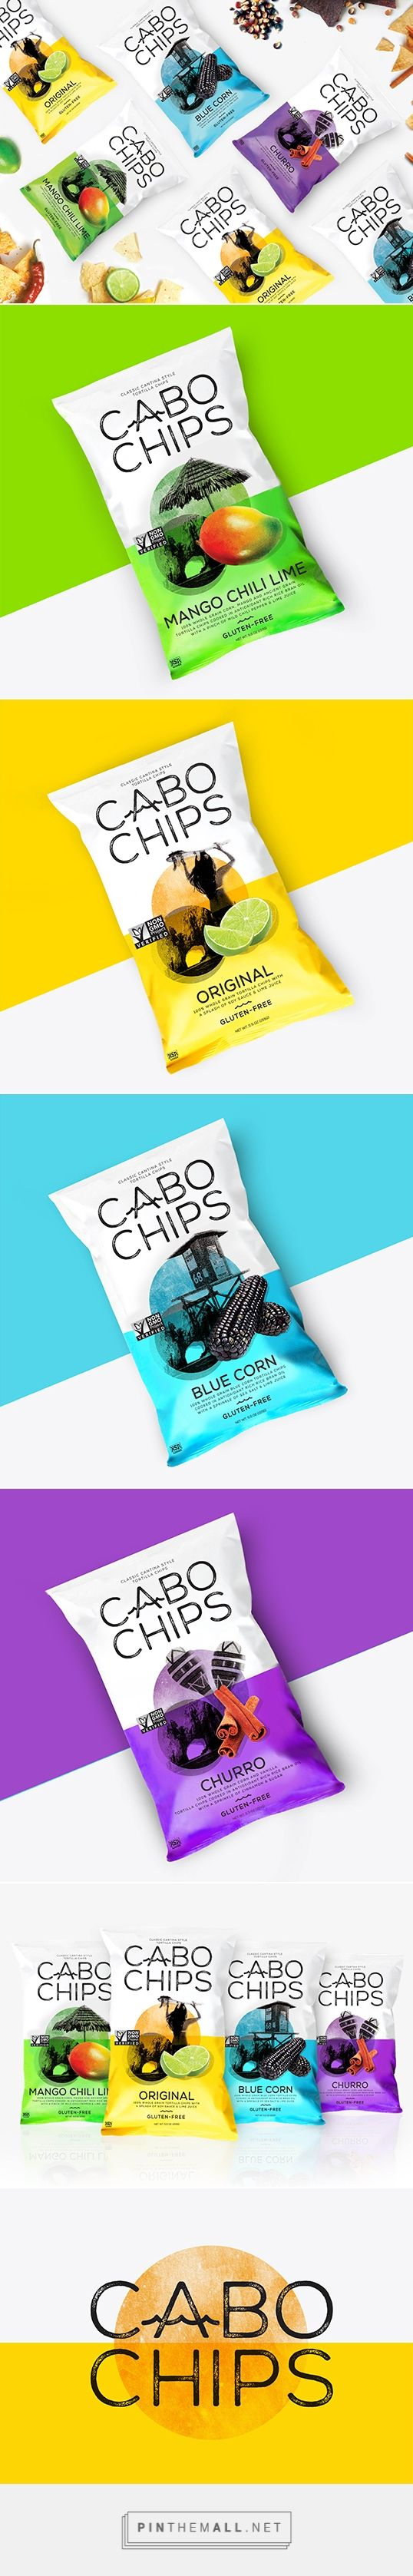 Cabo Chips via Lovely Package by Rook curated by Packaging Diva PD. Tasty…